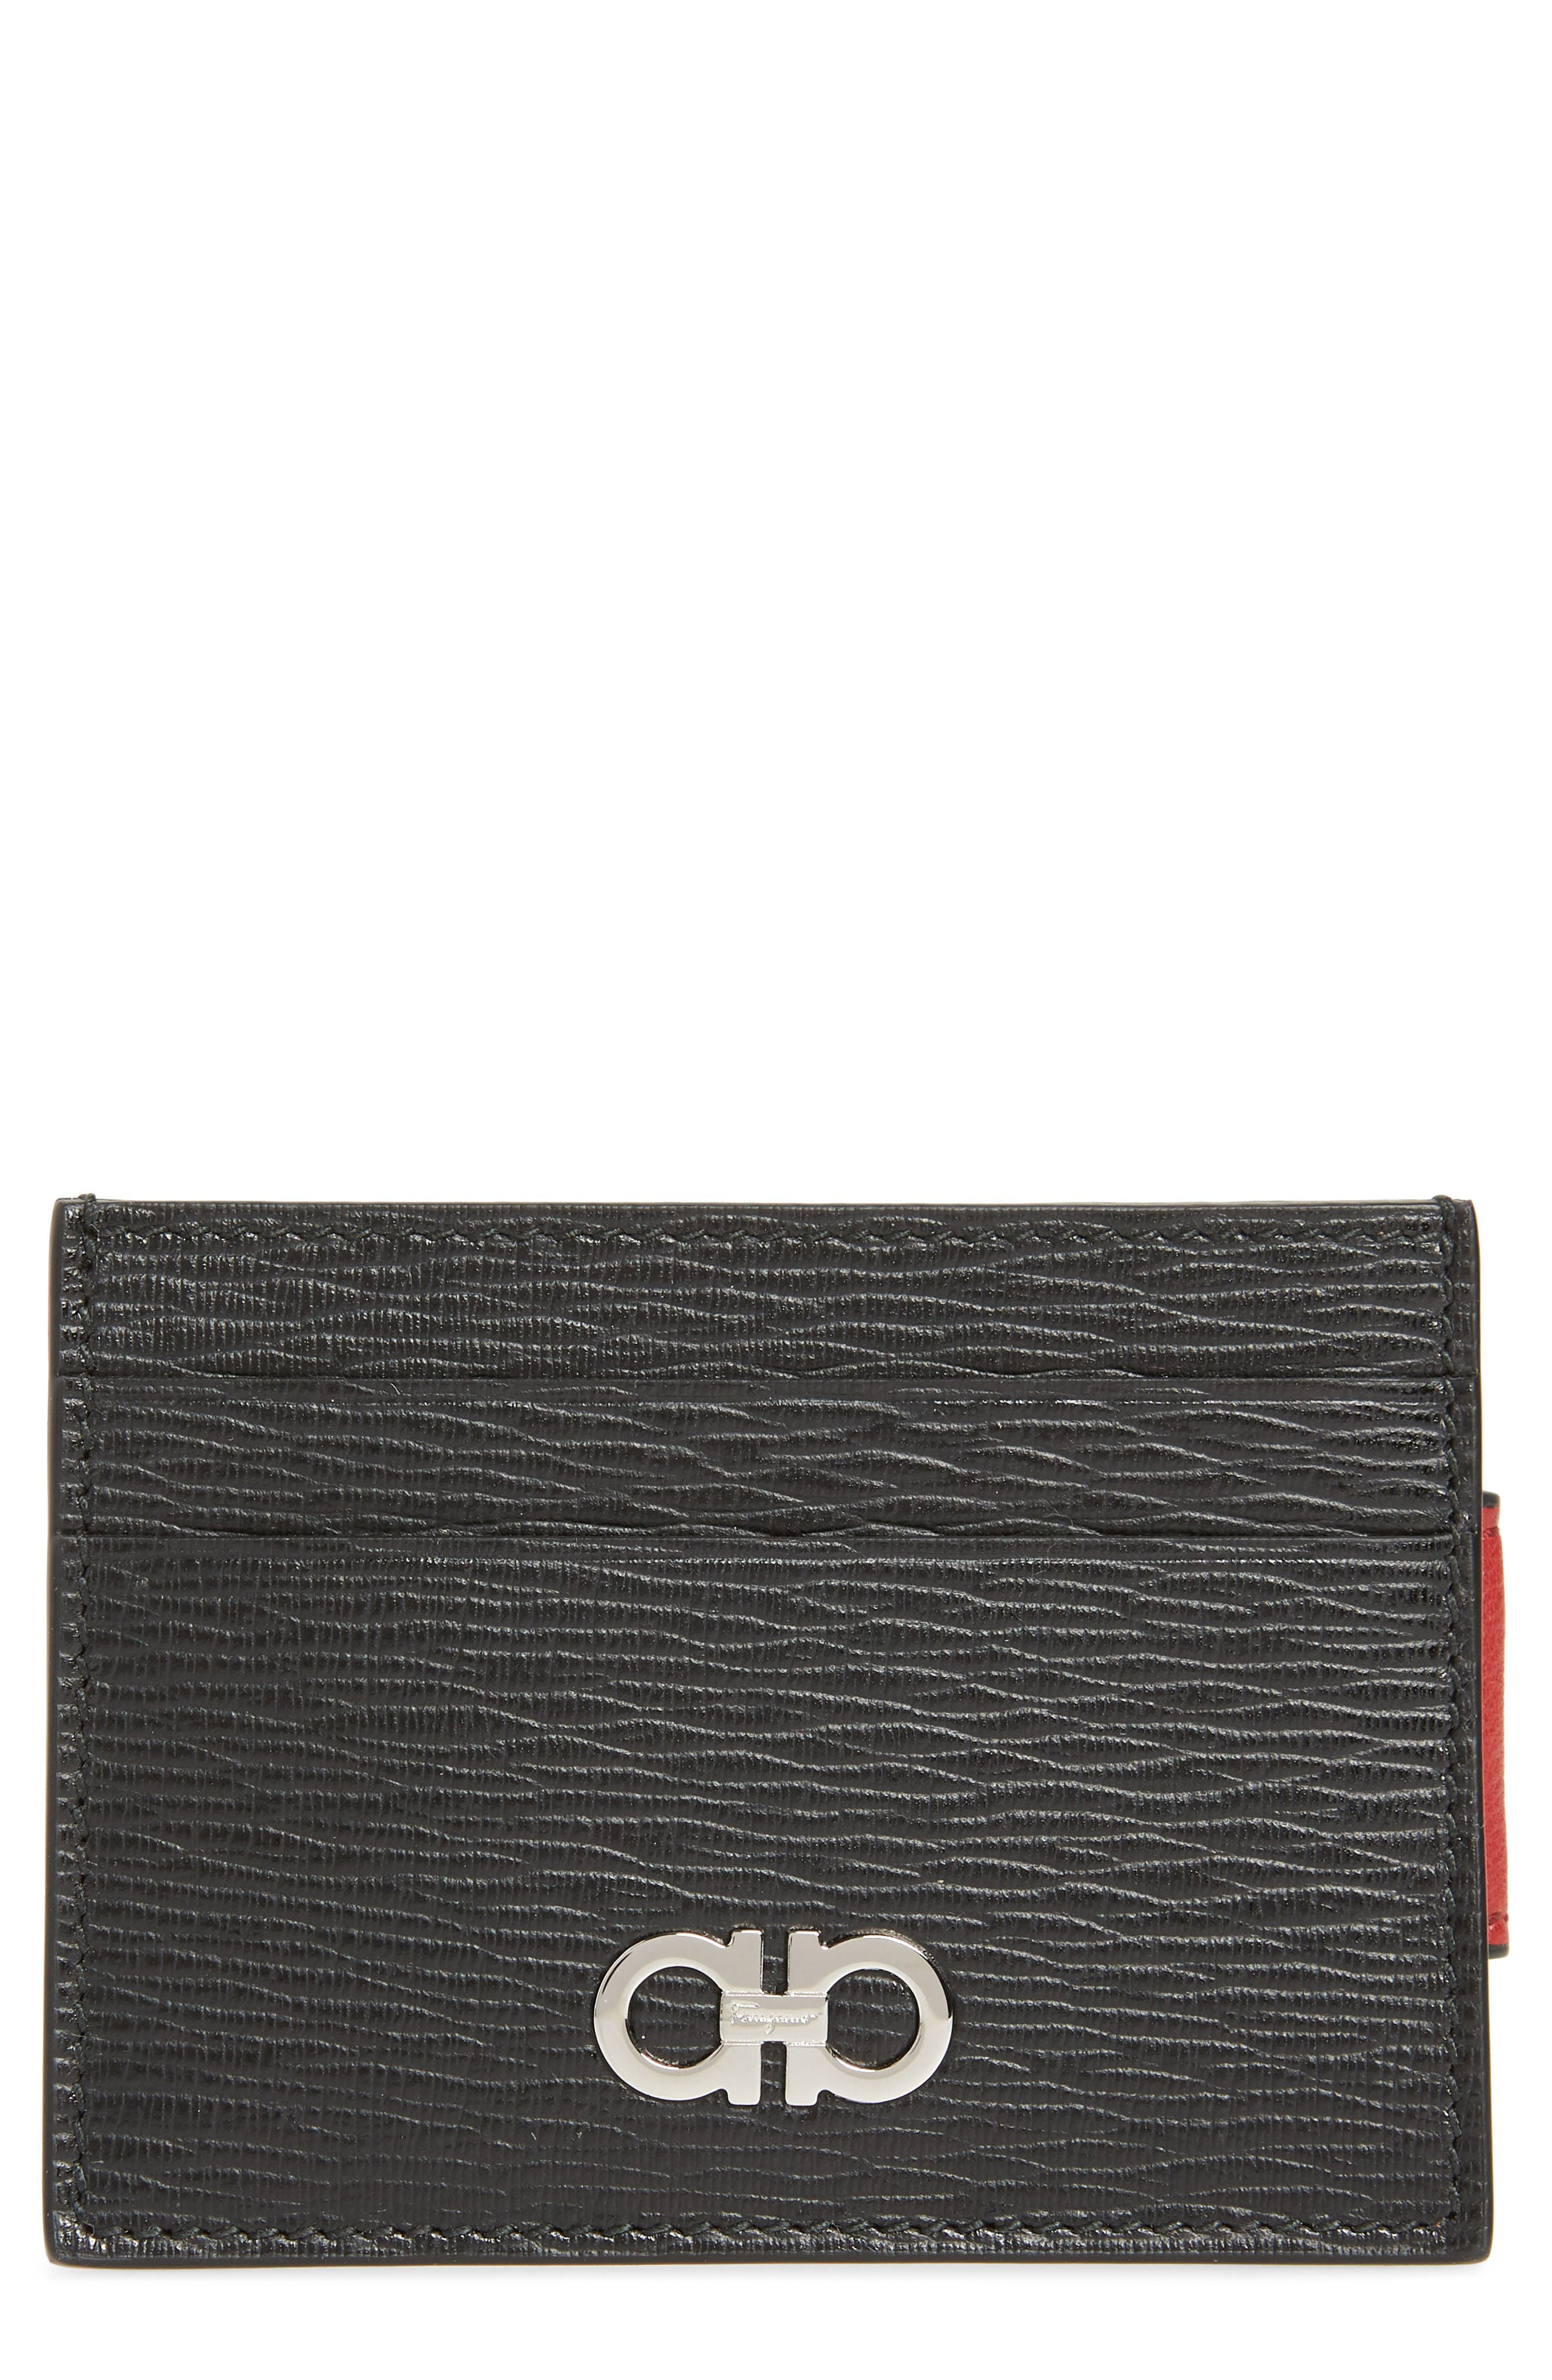 SALVATORE FERRAGAMO Revival Leather Magnetic Money Clip Card Case, Main, color, 979